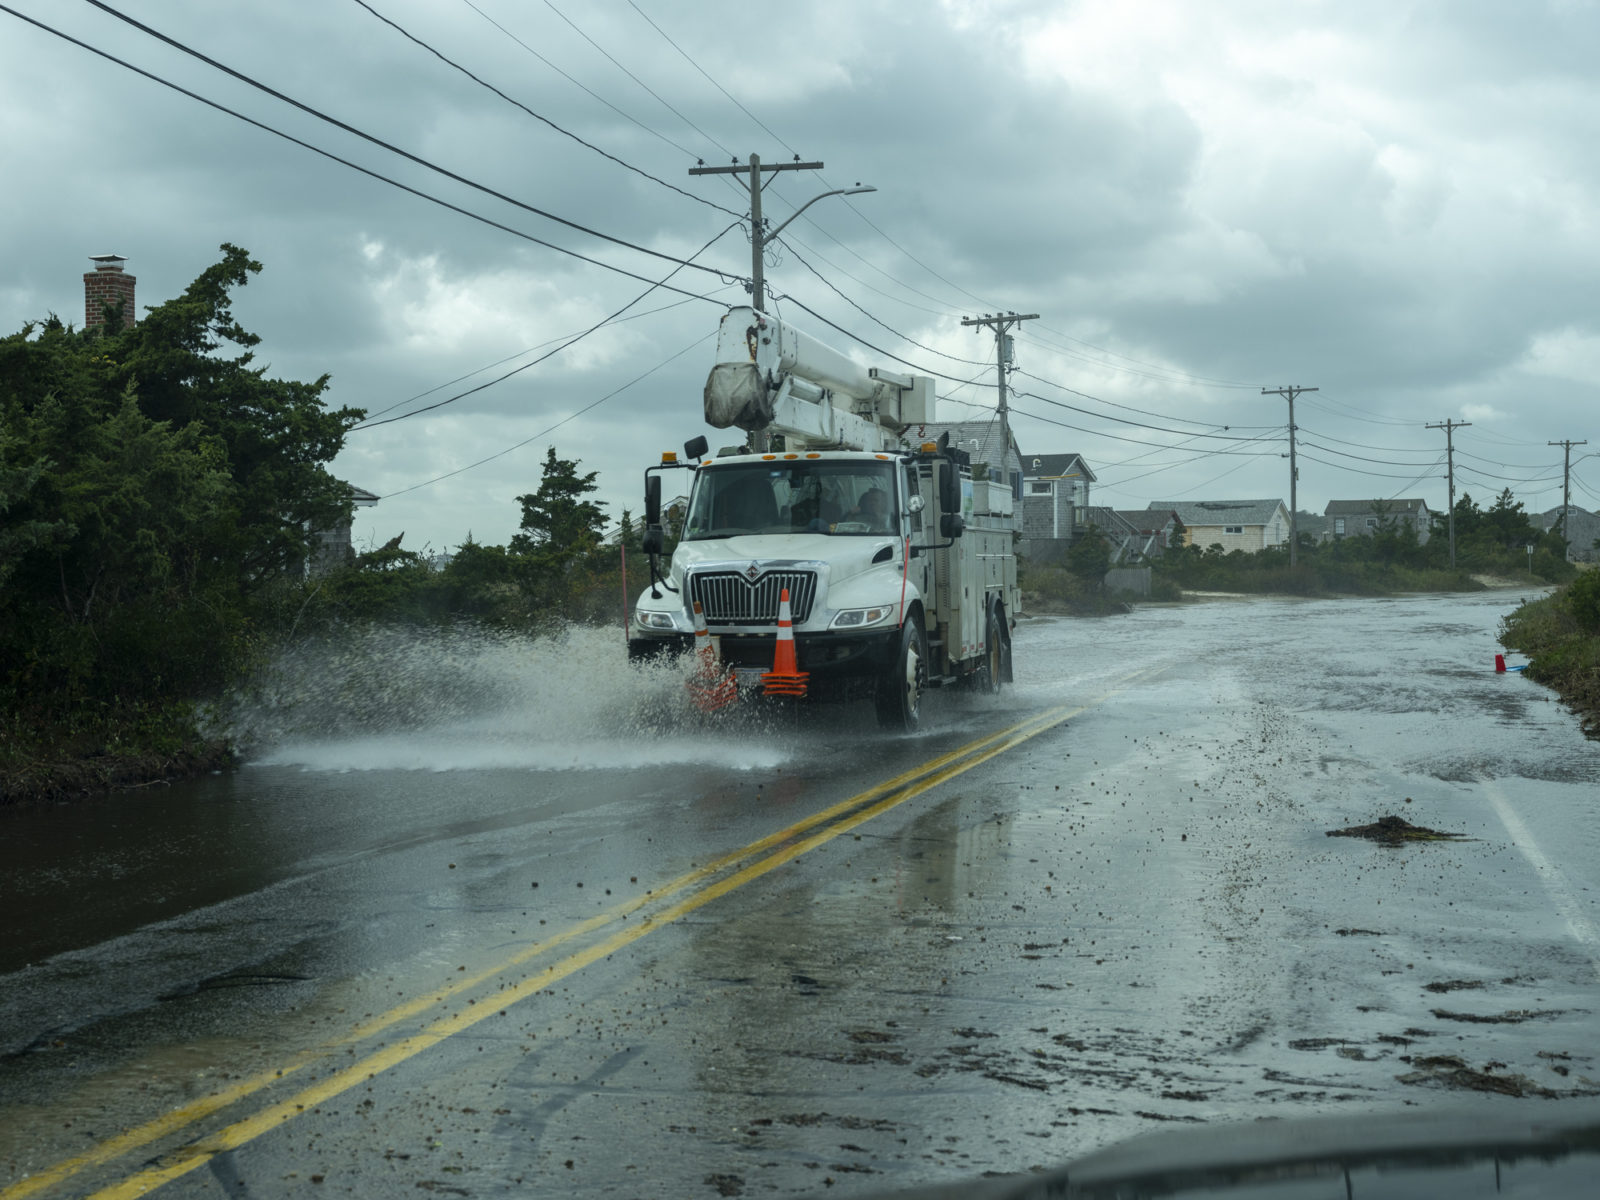 A picture of a utility truck driving in a storm, for a blog post on emergency preparation.